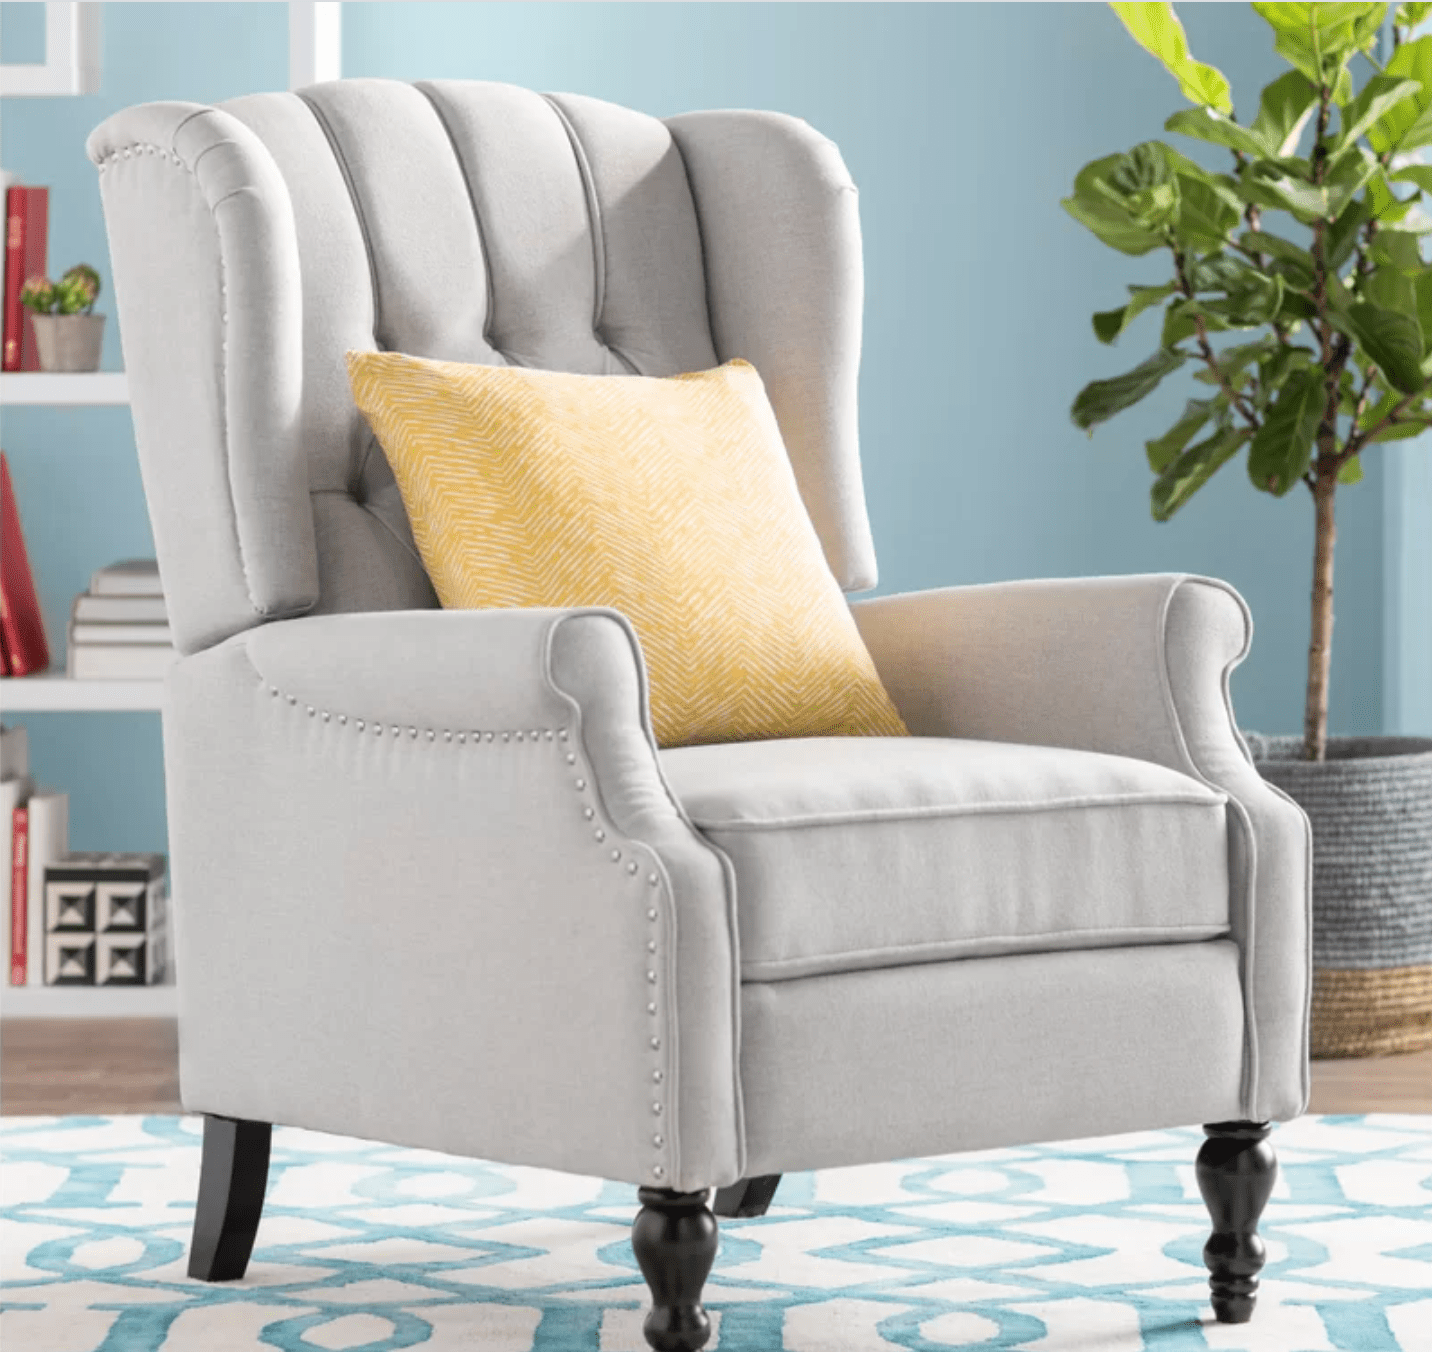 Andover Mills Leonie 35-Inch Wide Faux Leather Wing Chair Recliner in grey